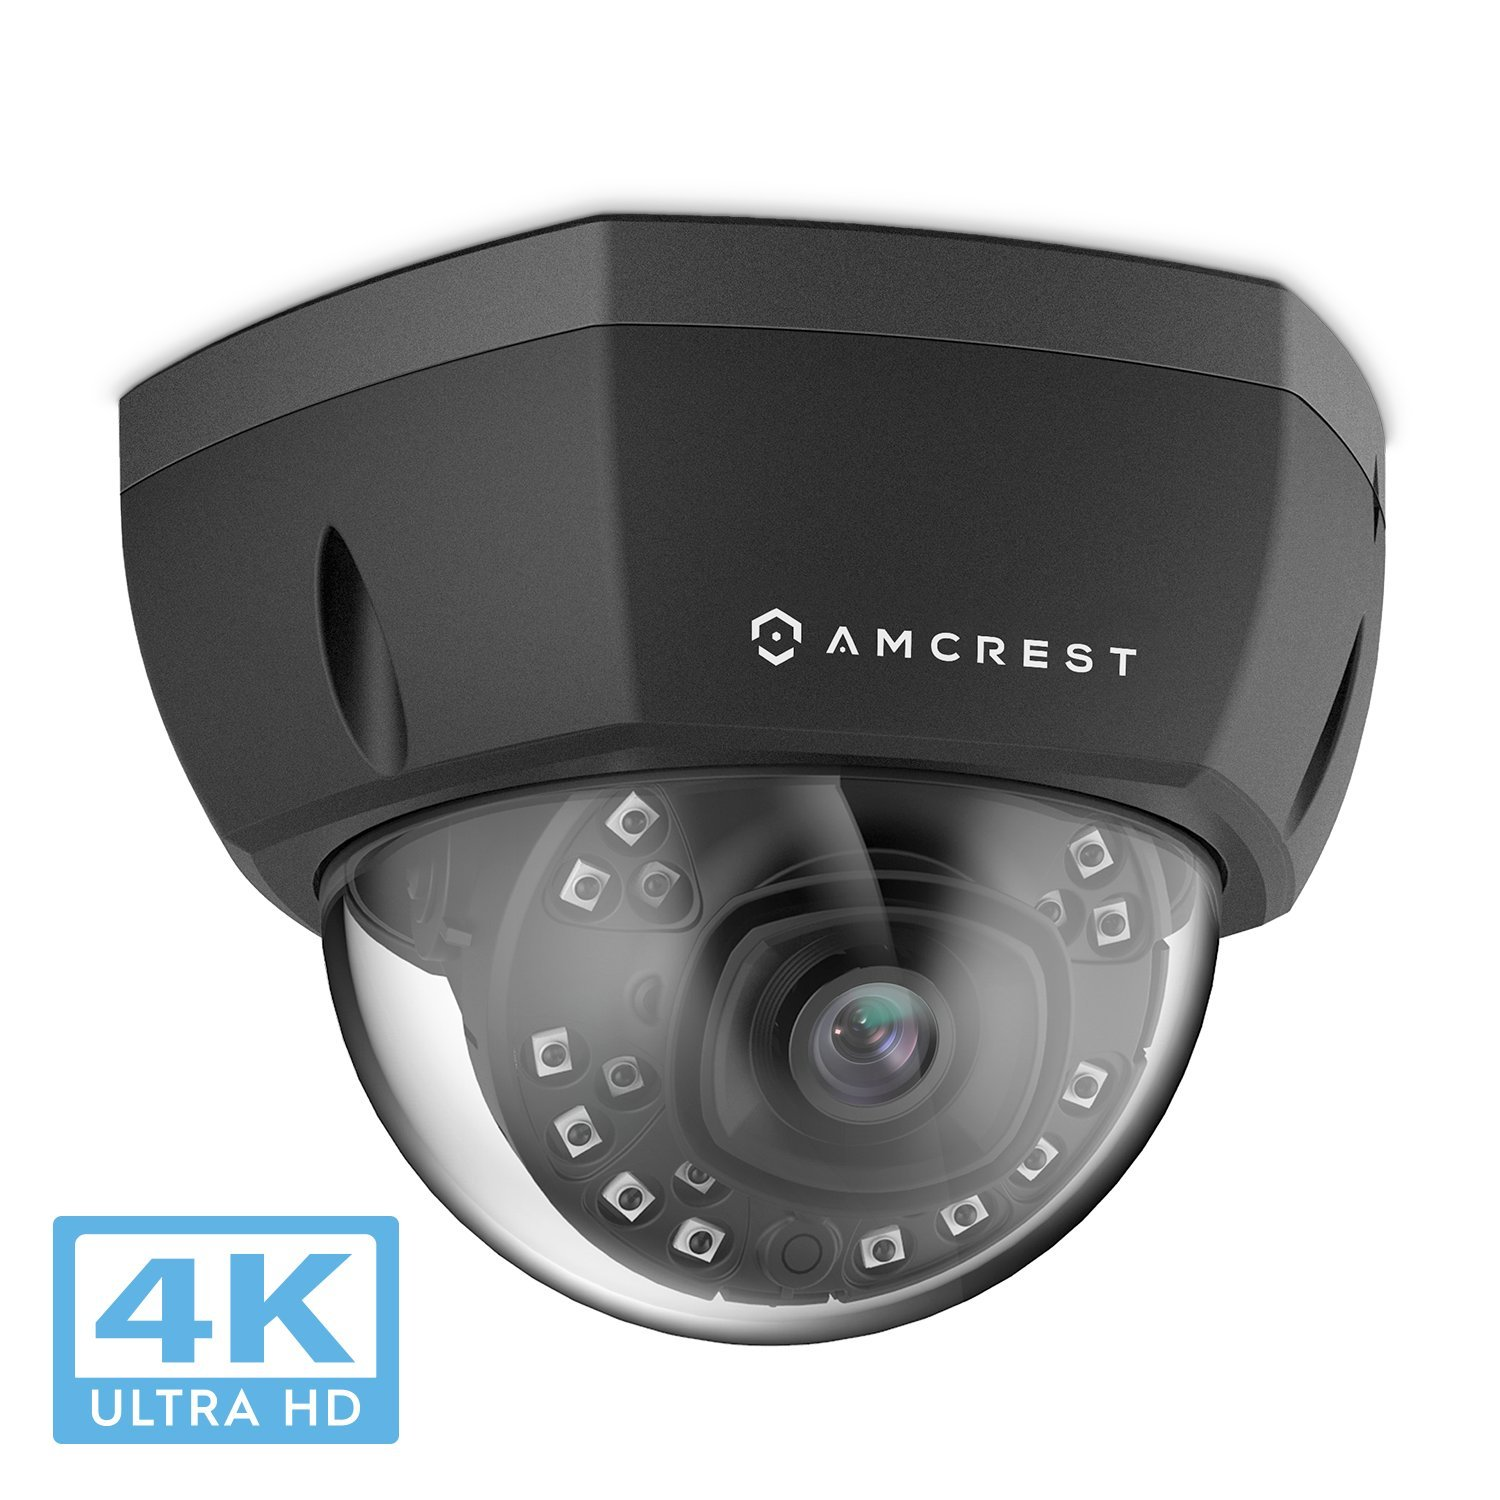 Amcrest 4K Outdoor POE IP Camera, UltraHD 8MP Security Camera, 3840x2160P Resolution, IK10 Vandal Resistant Dome, 2.8mm Lens, IP67 Weatherproof Security, Cloud & MicroSD Recording (IP8M-2493EB)